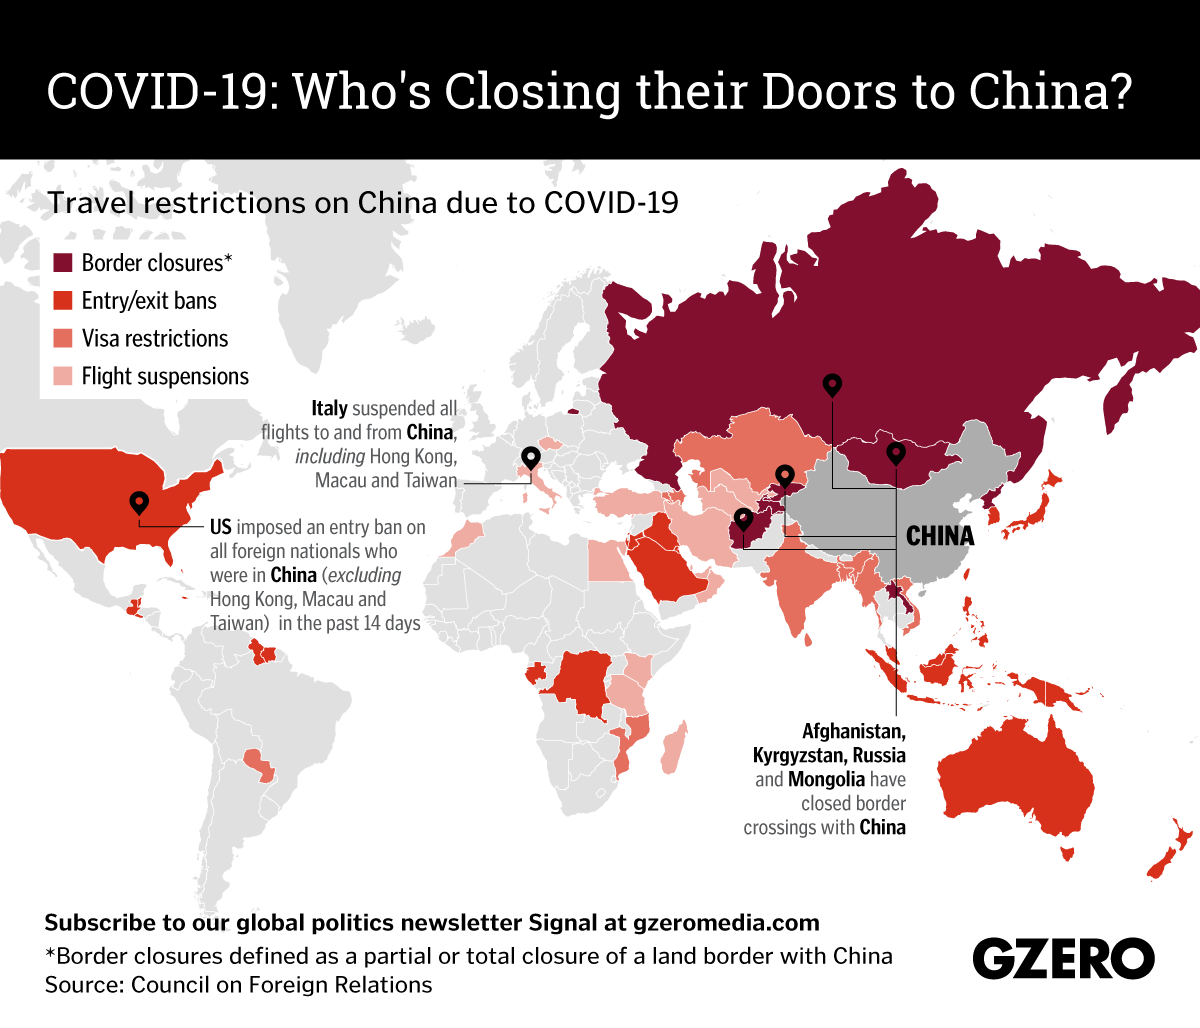 The Graphic Truth: Who's closing their doors to China due to COVID-19?